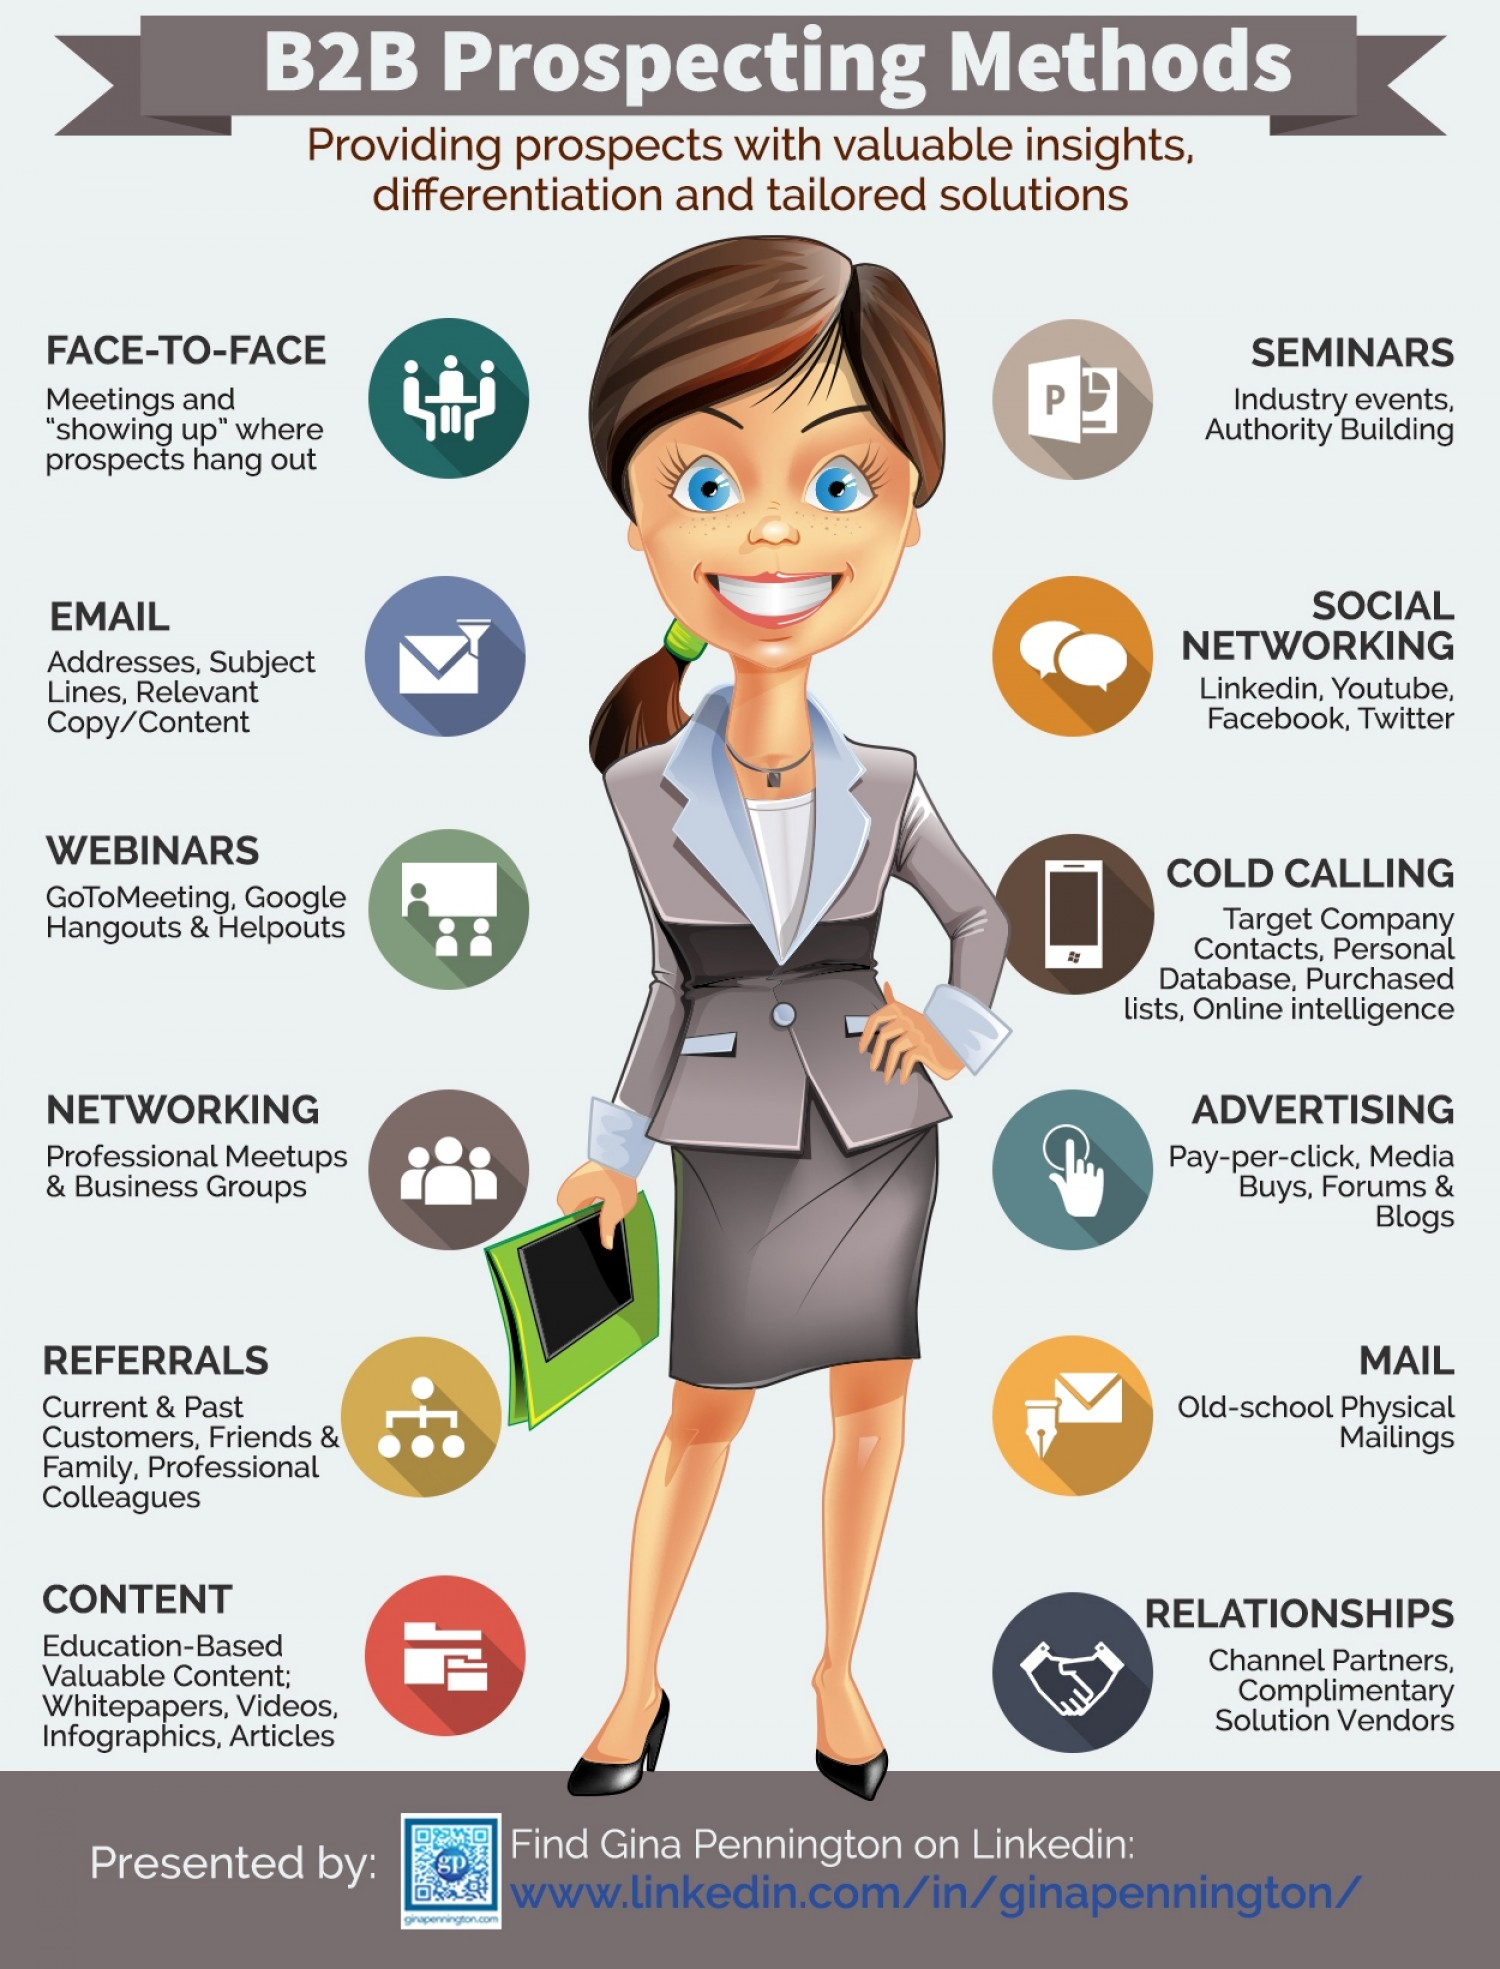 top 10 sales techniques the best sales approach for you is to most effective sales techniques the best sales techniques best selling methods best upselling techniques top selling techniques